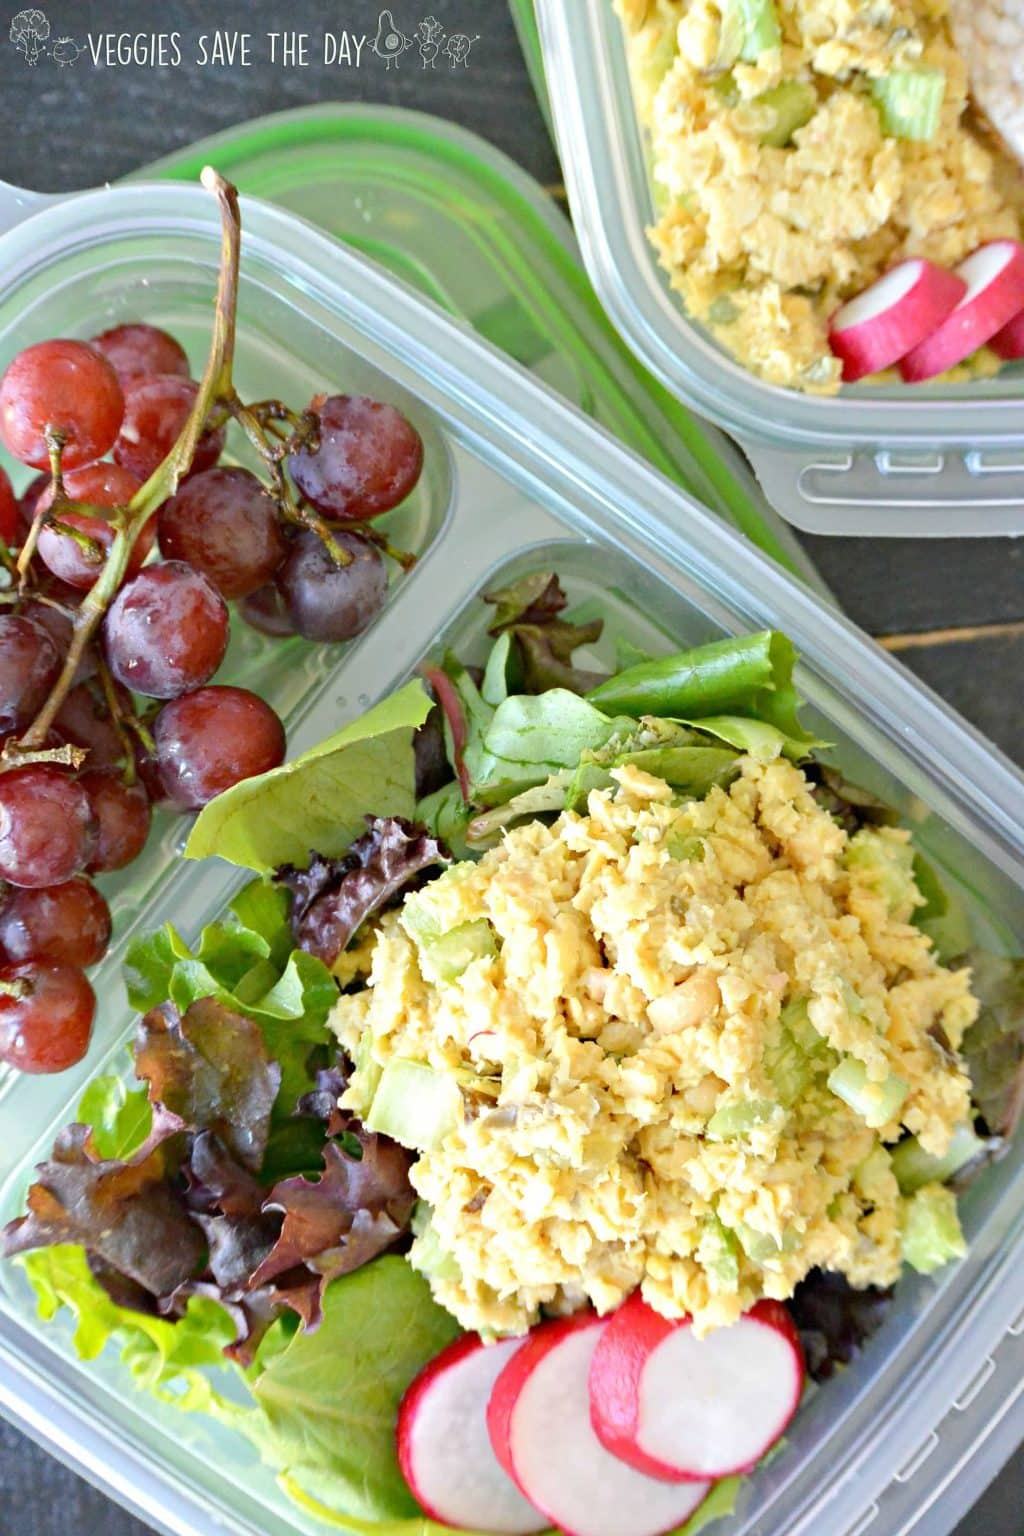 Vegan Tuna Salad packed for back-to-school or work lunches on a bed of ...